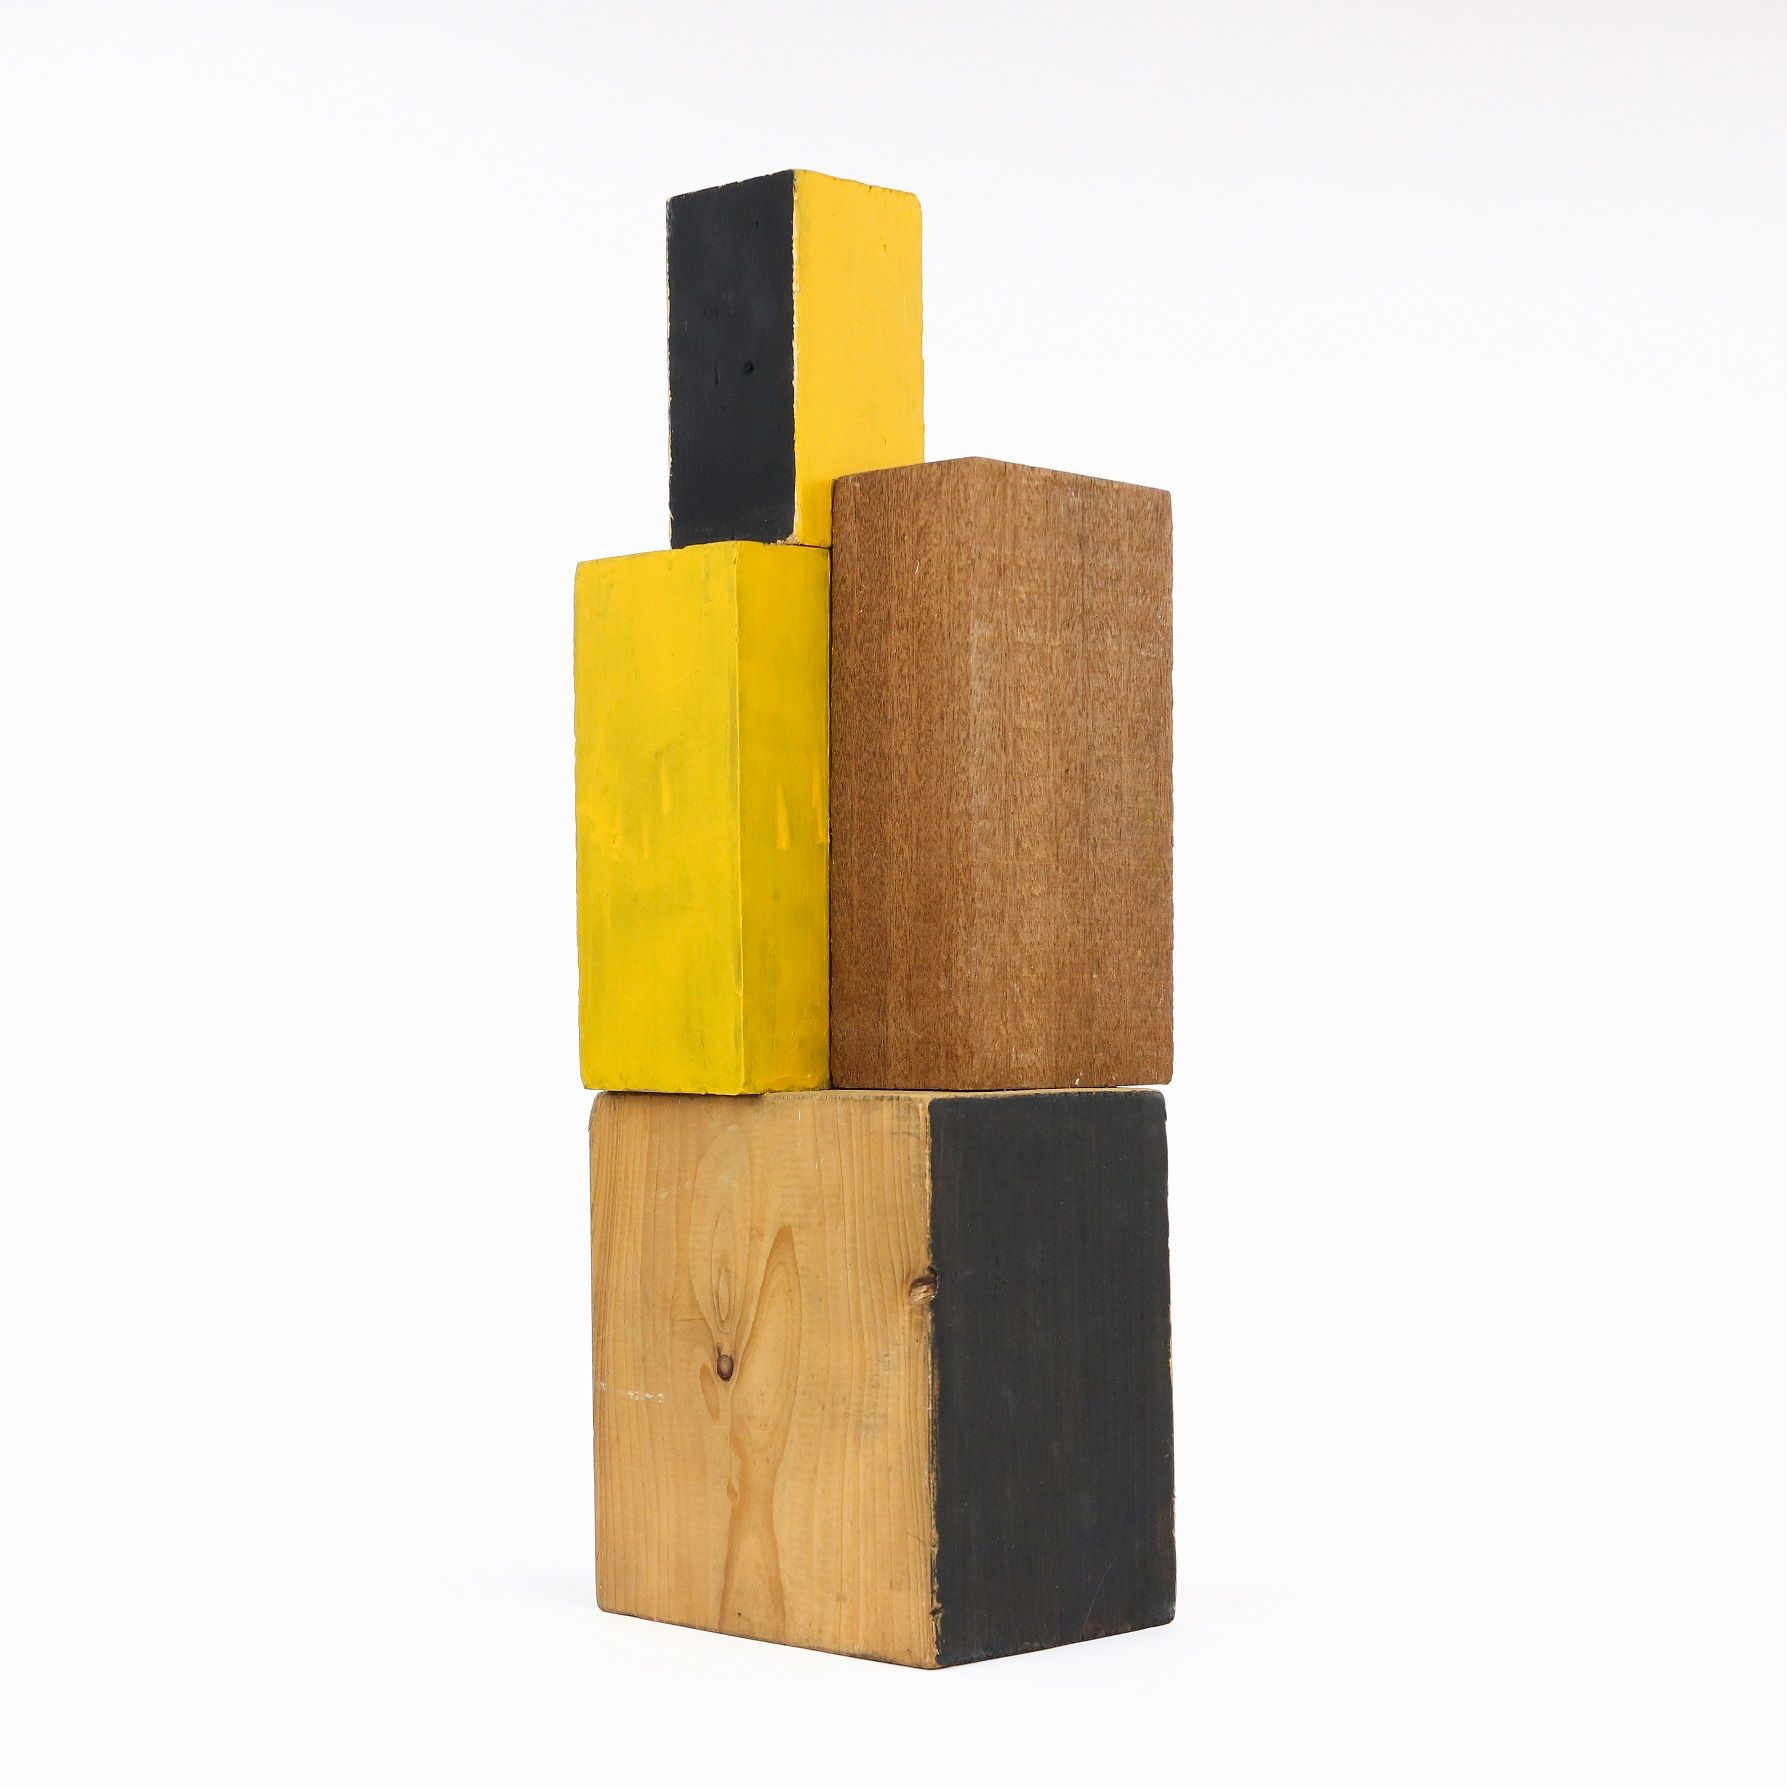 Blocs, série Architecture ,Delphine Brabant,Sculpture contemporaine